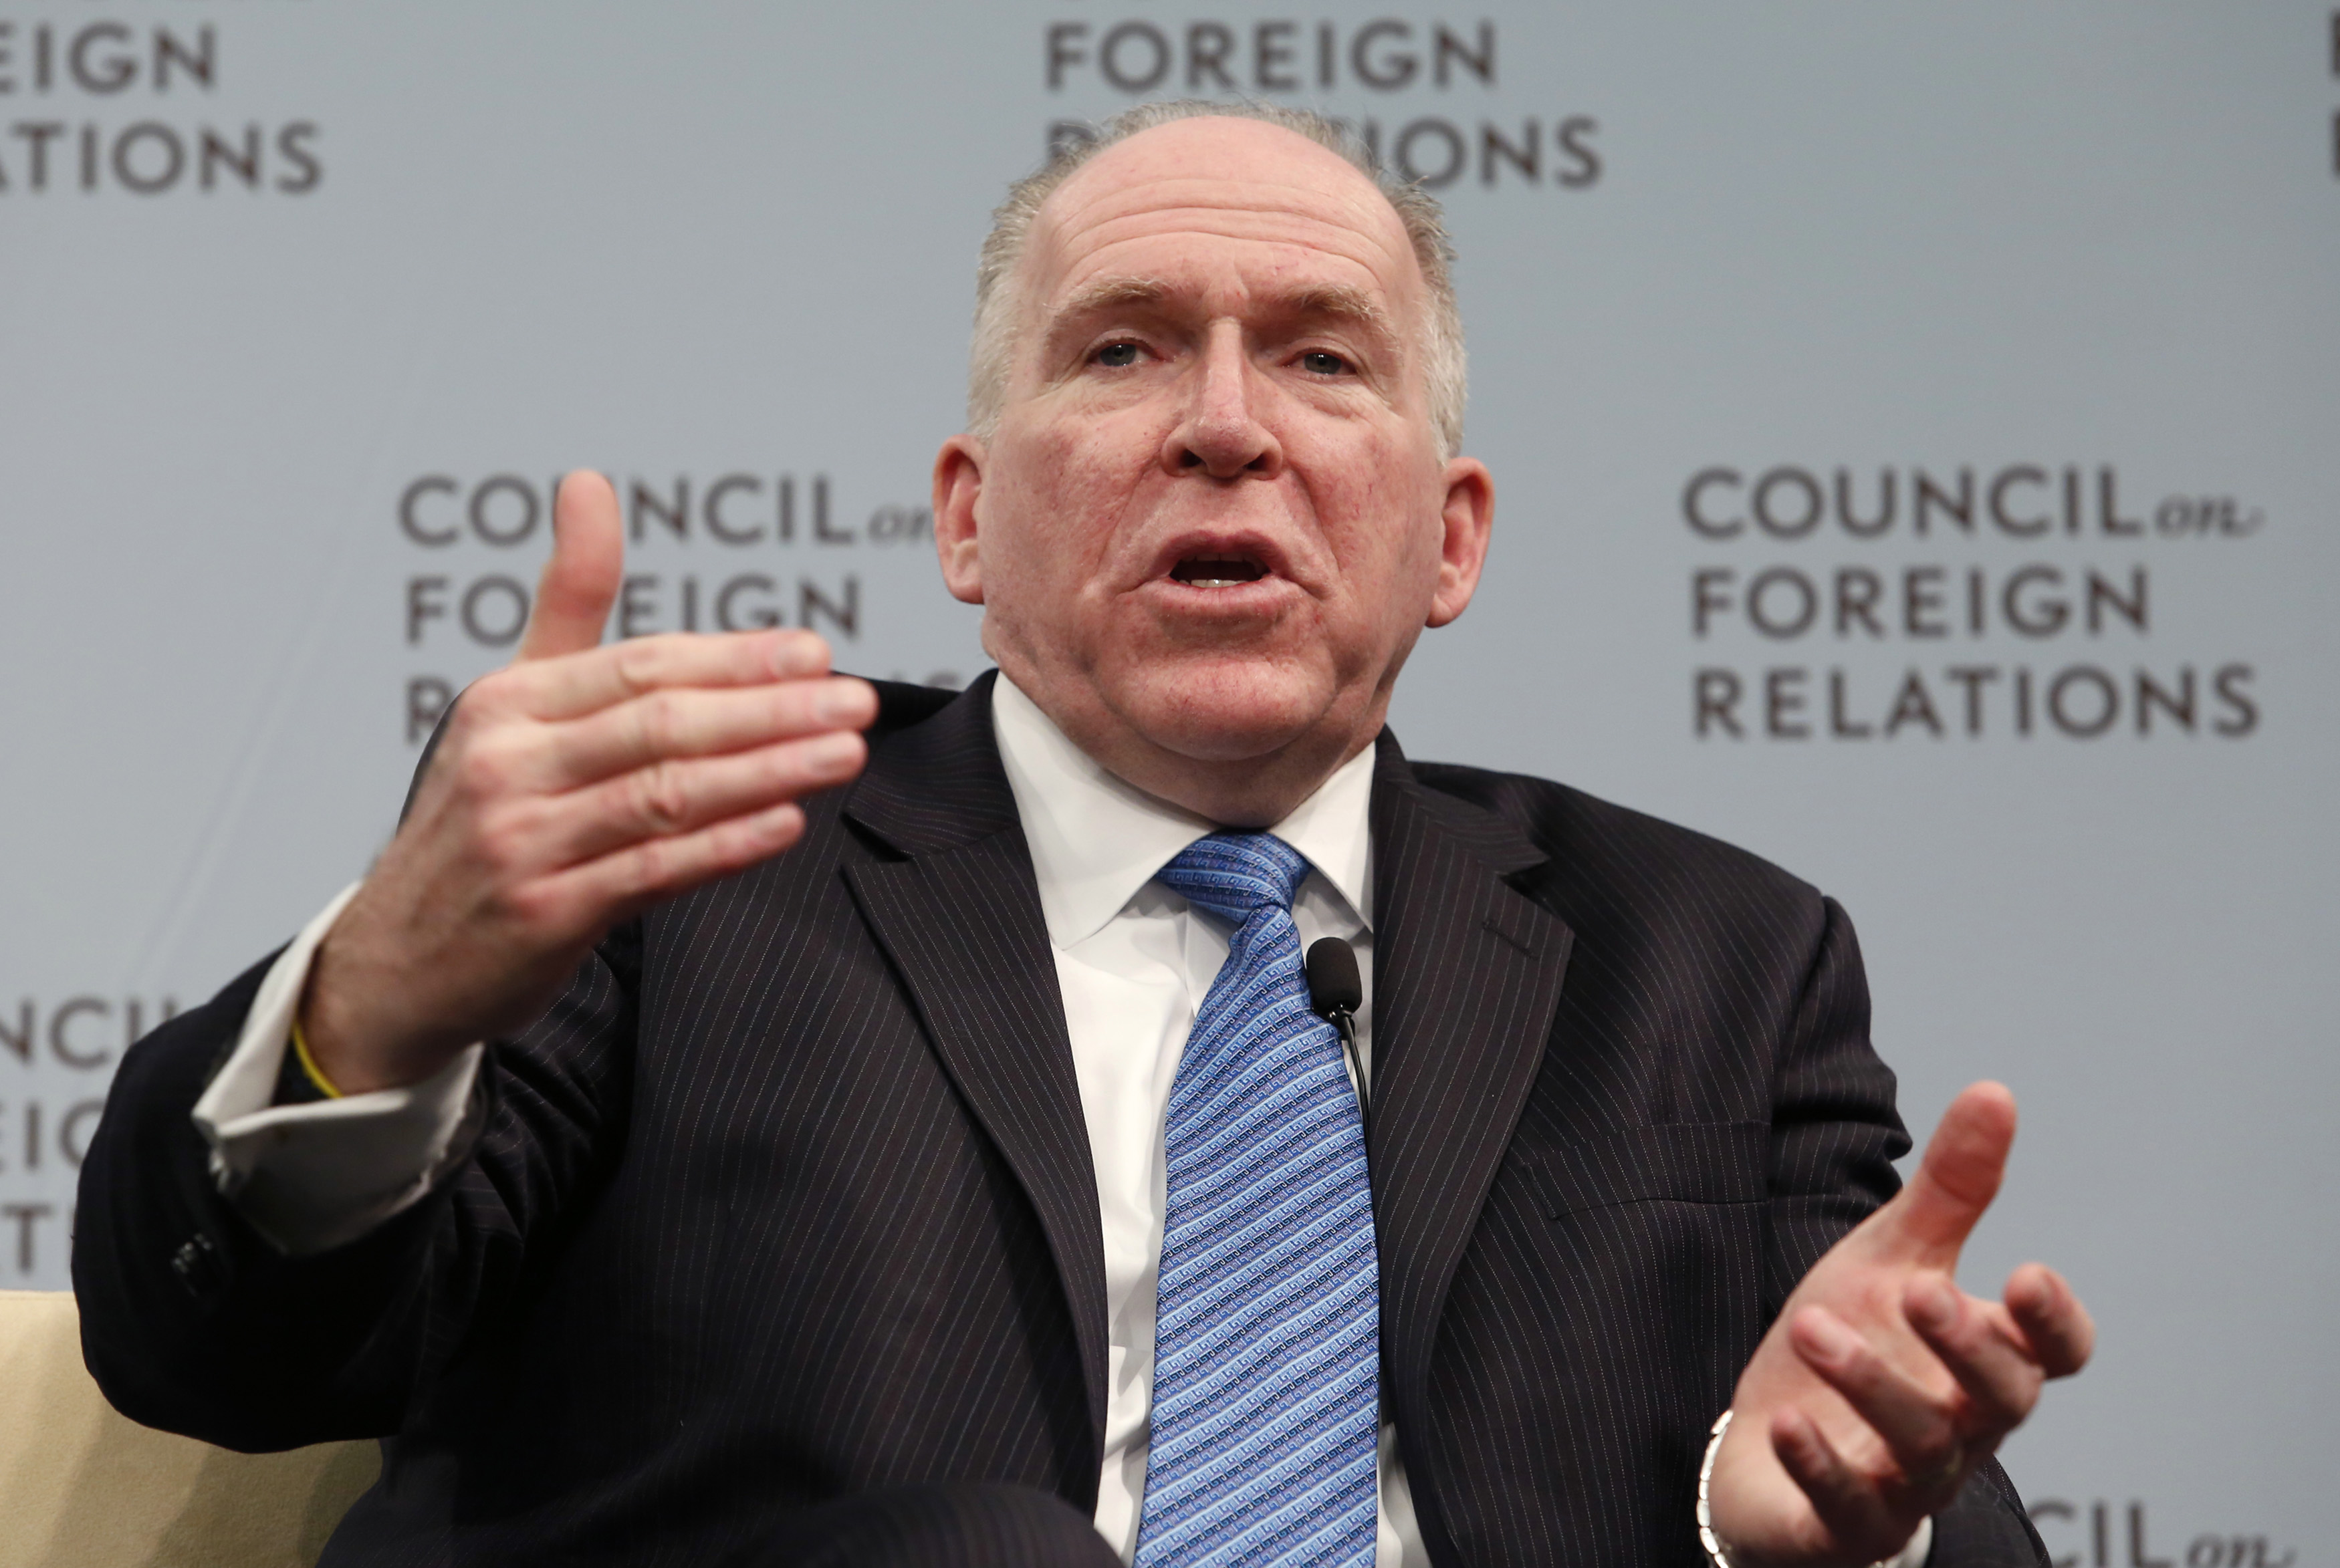 Central Intelligence Agency Director John Brennan speaks at a Council on Foreign Relations forum in Washington March 11, 2014.